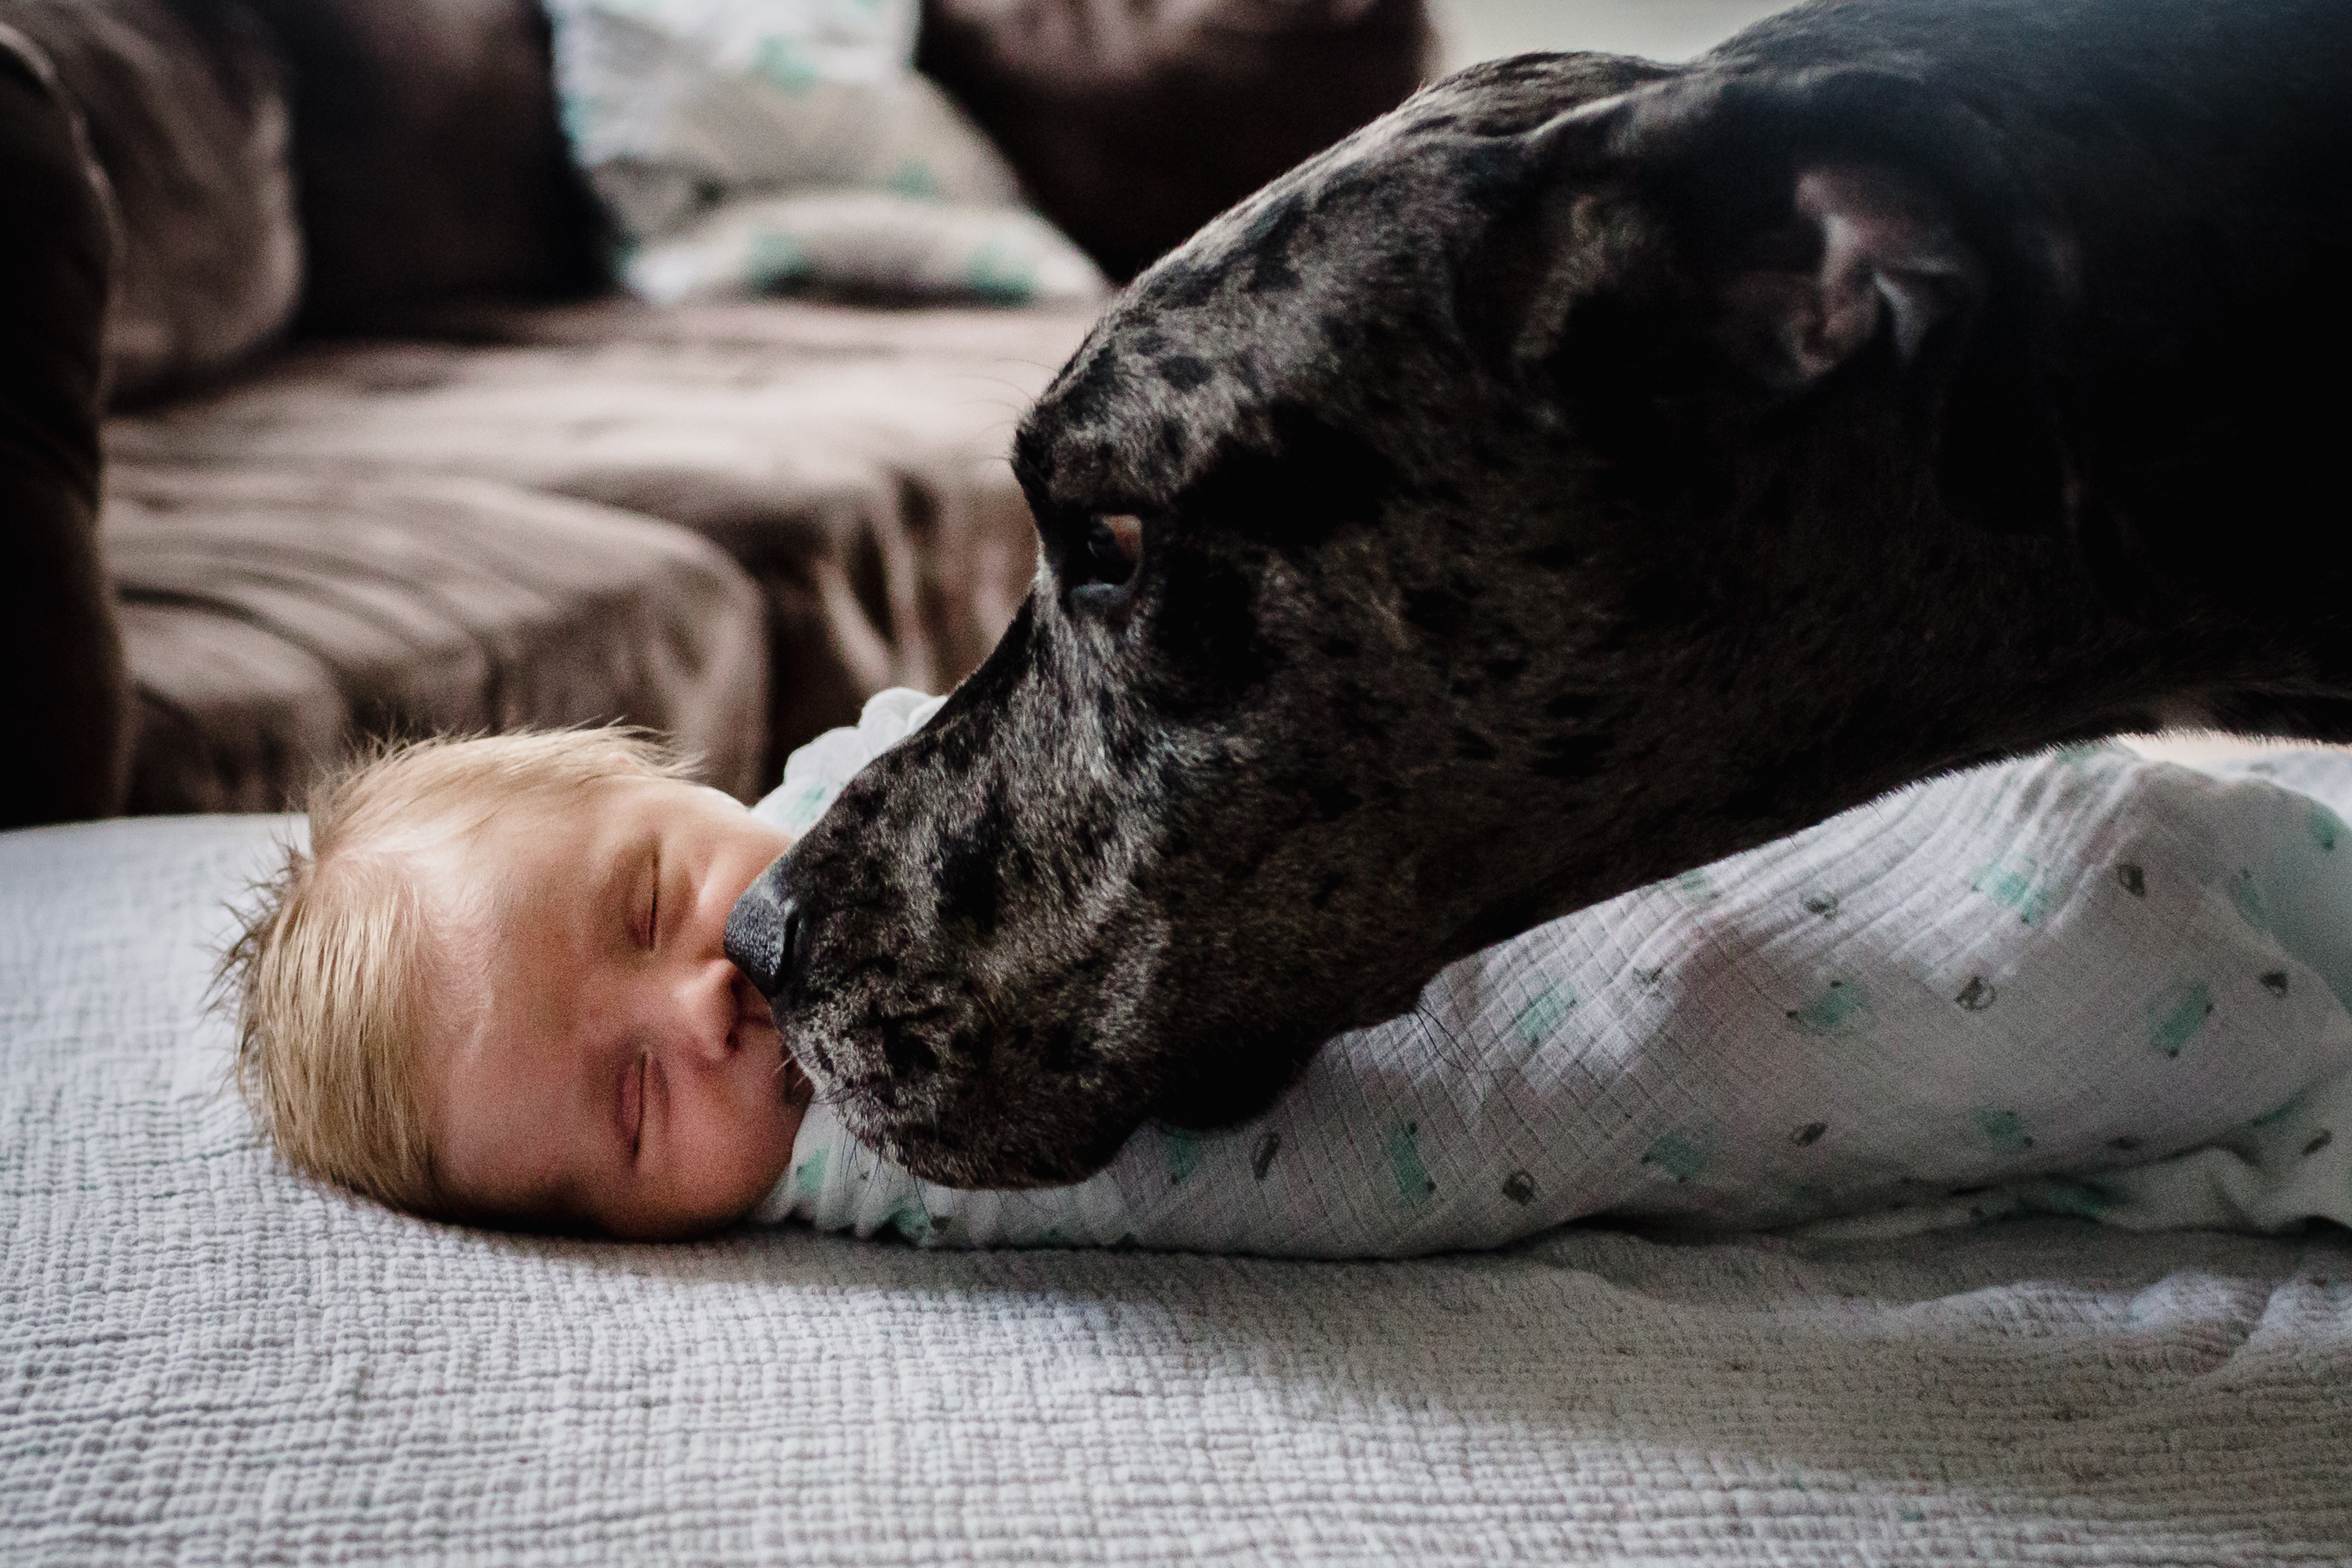 dog sniffing a newborn baby's face